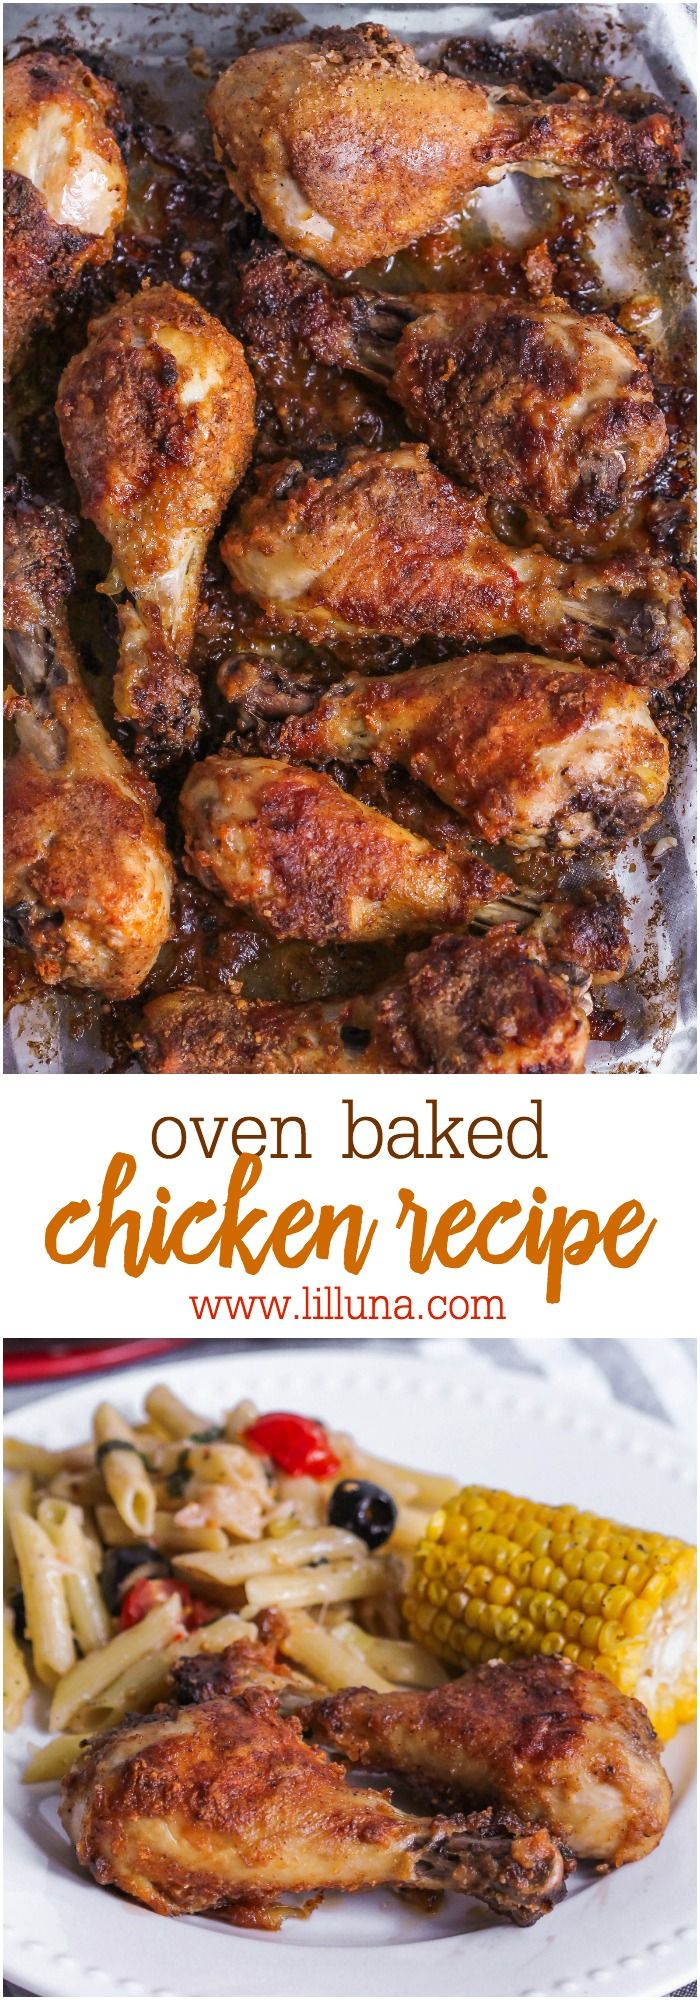 Oven Baked Chicken - one of the easiest, yummiest chicken recipes you'll try! It's a new favorite dinner idea.